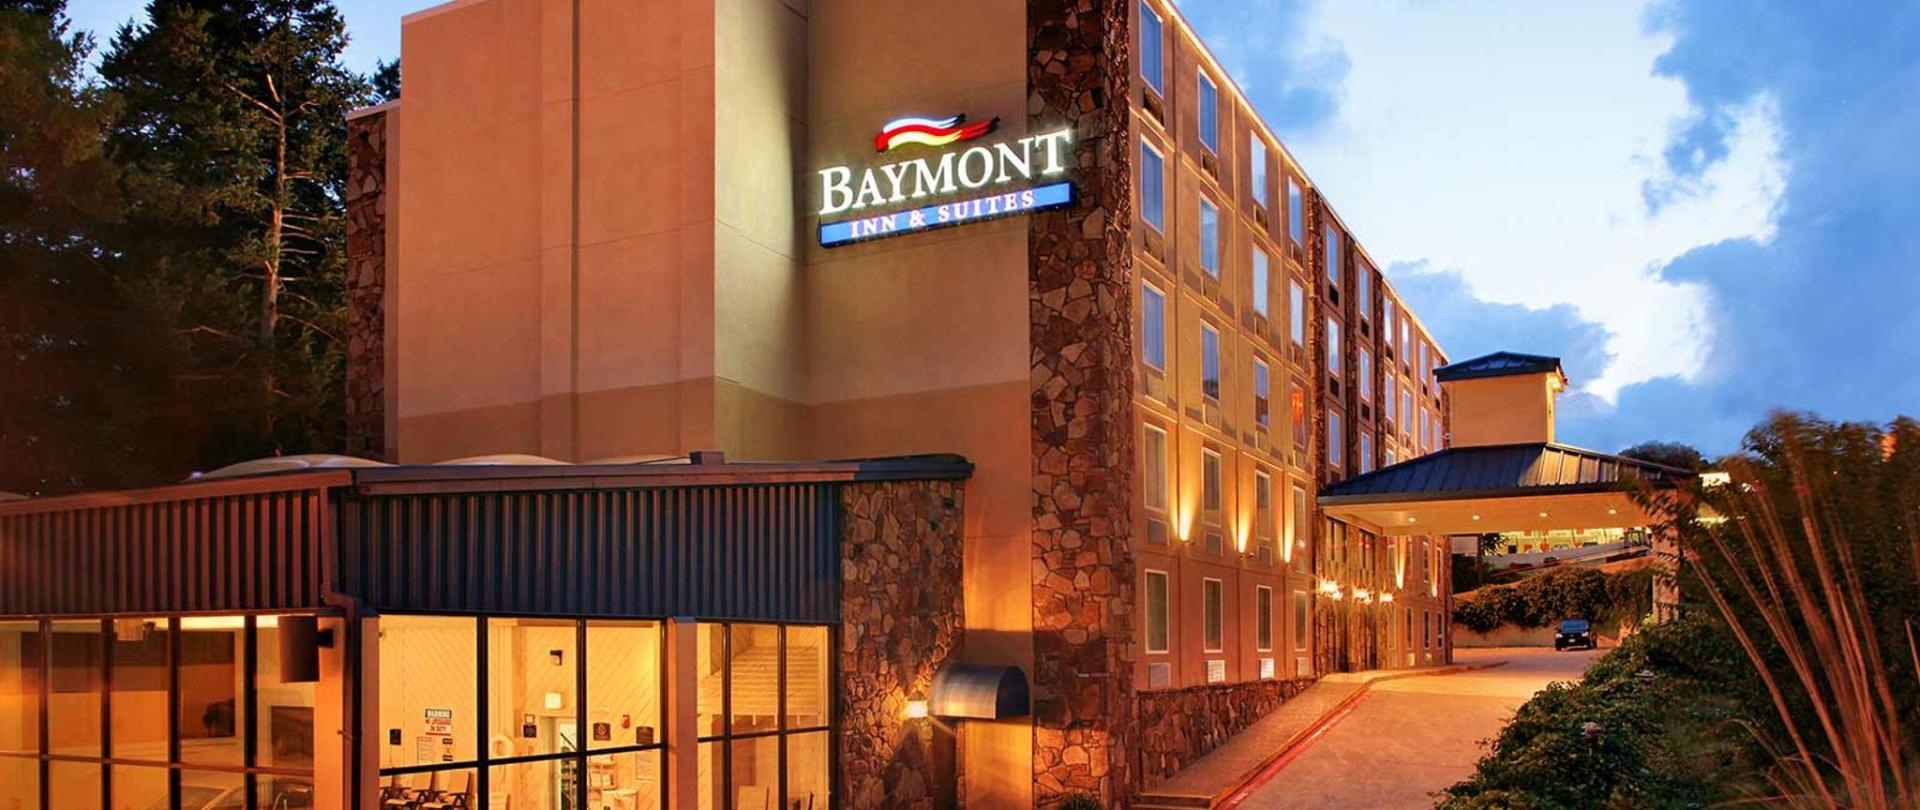 Branson Mo Hotel Baymont Inn Suites On The Strip United States Of America